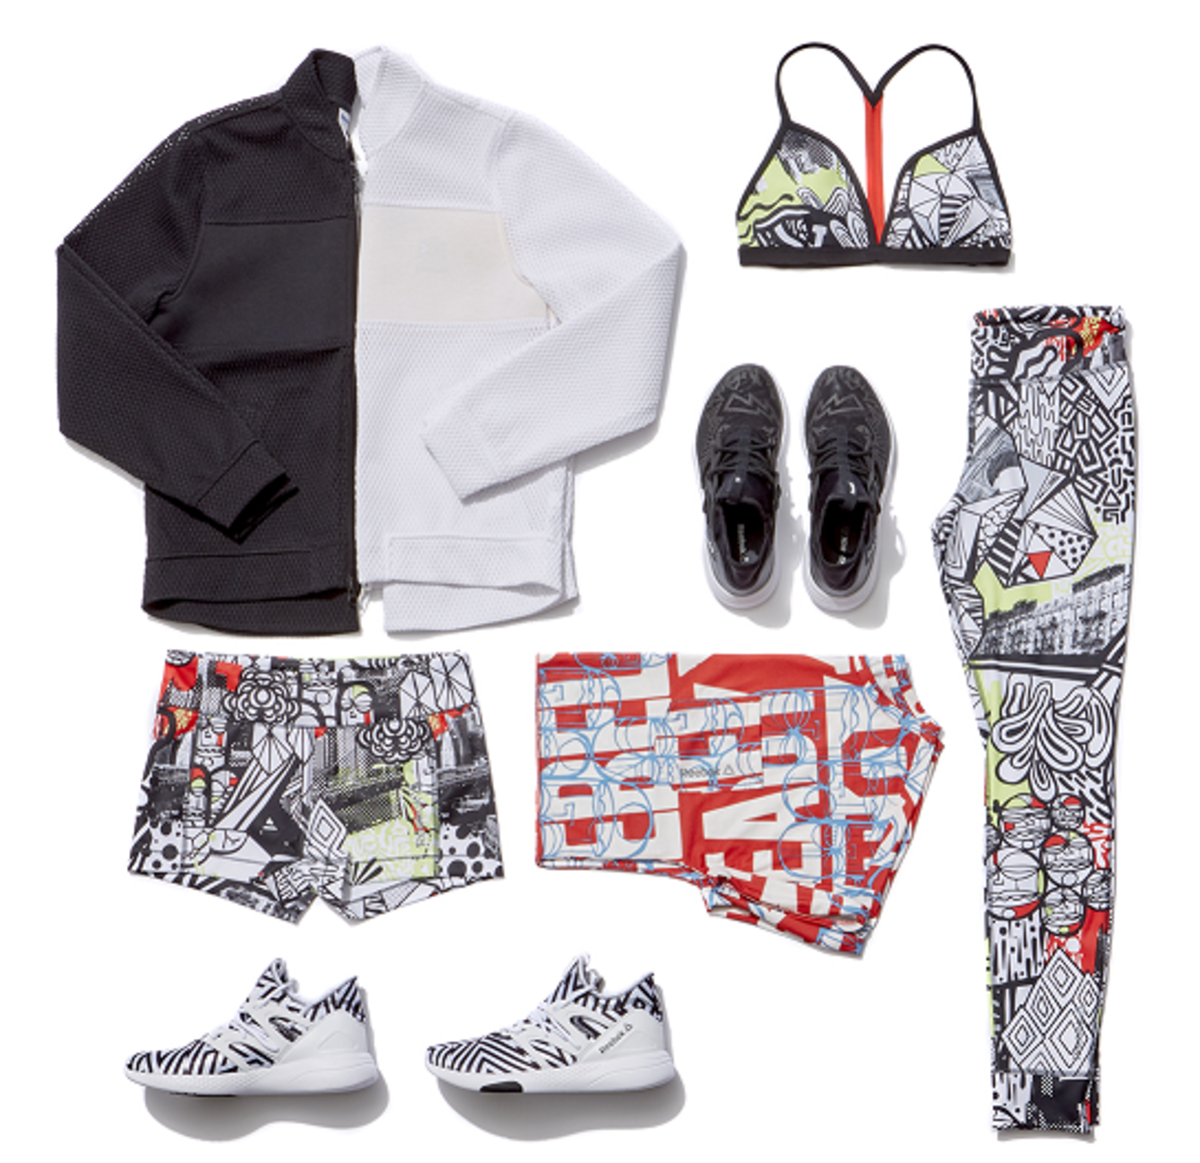 Reebok spring 2016 pieces that will debut at Bandier. Photo: Reebok